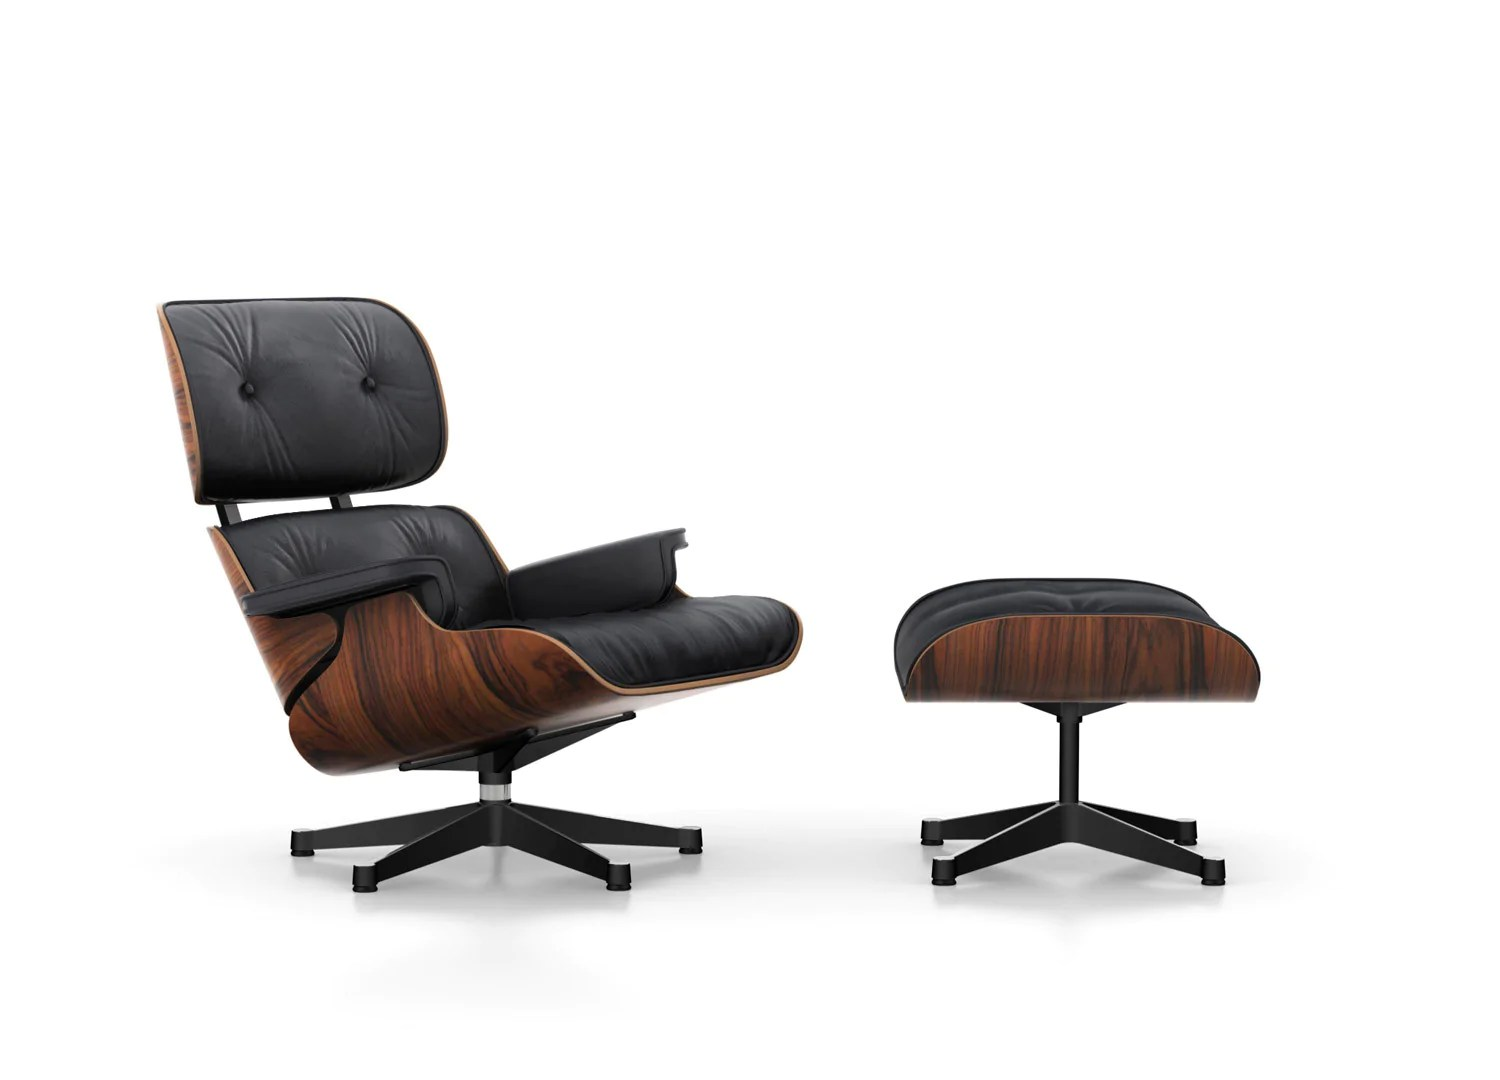 Eames Lounge Sessel Eames Lounge Chair Santos Palisander